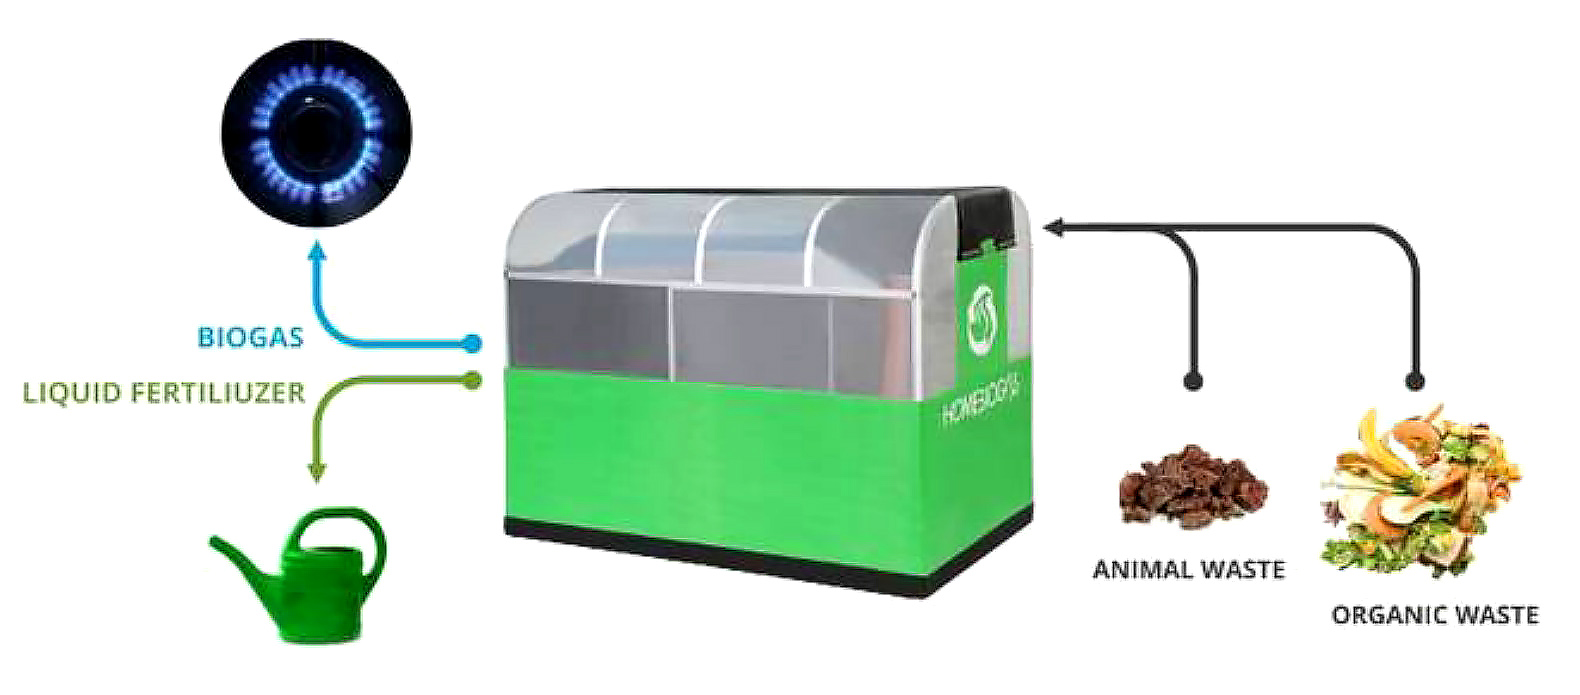 Home biogas unit lets you convert your own organic waste into cooking fuel